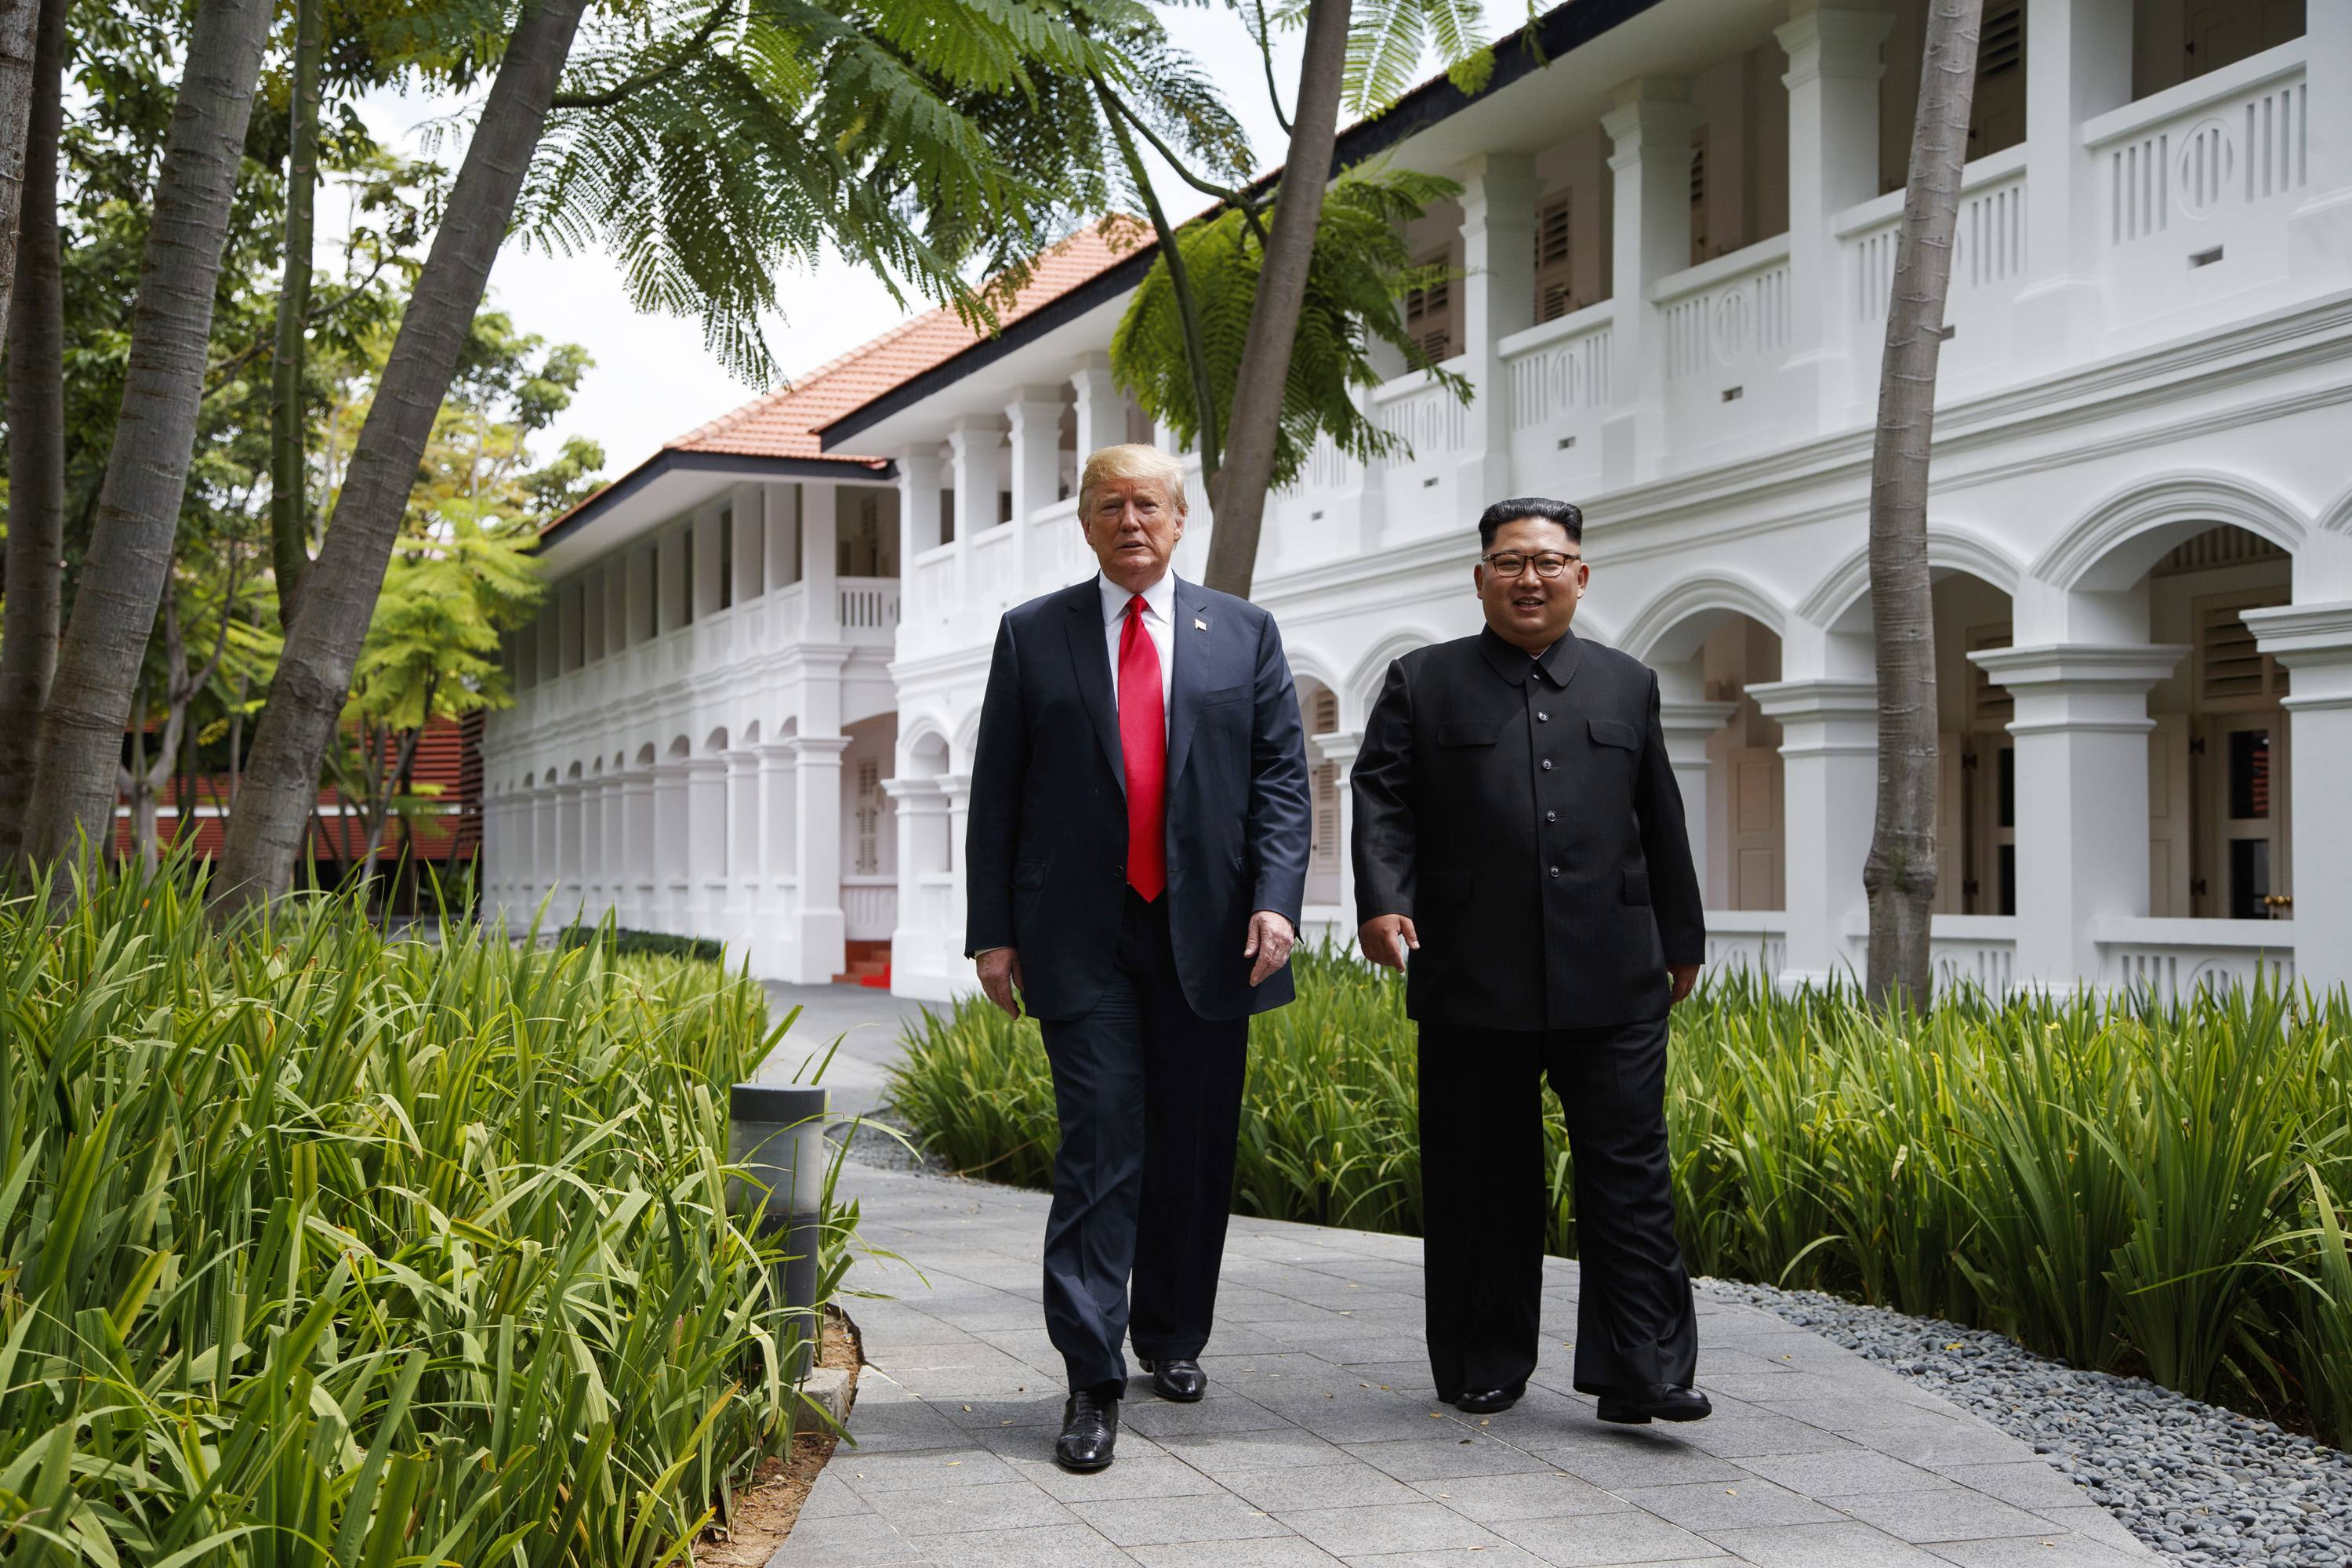 FILE -- In this June 12, 2018, file photo, President Donald Trump walks with North Korean leader Kim Jong Un on Sentosa Island in Singapore. In recent weeks it's become clear that Donald Trump wants to meet with Kim Jong Un again, and the North Korean leader has told the White House he'd like more face-to-face talks with the American president.